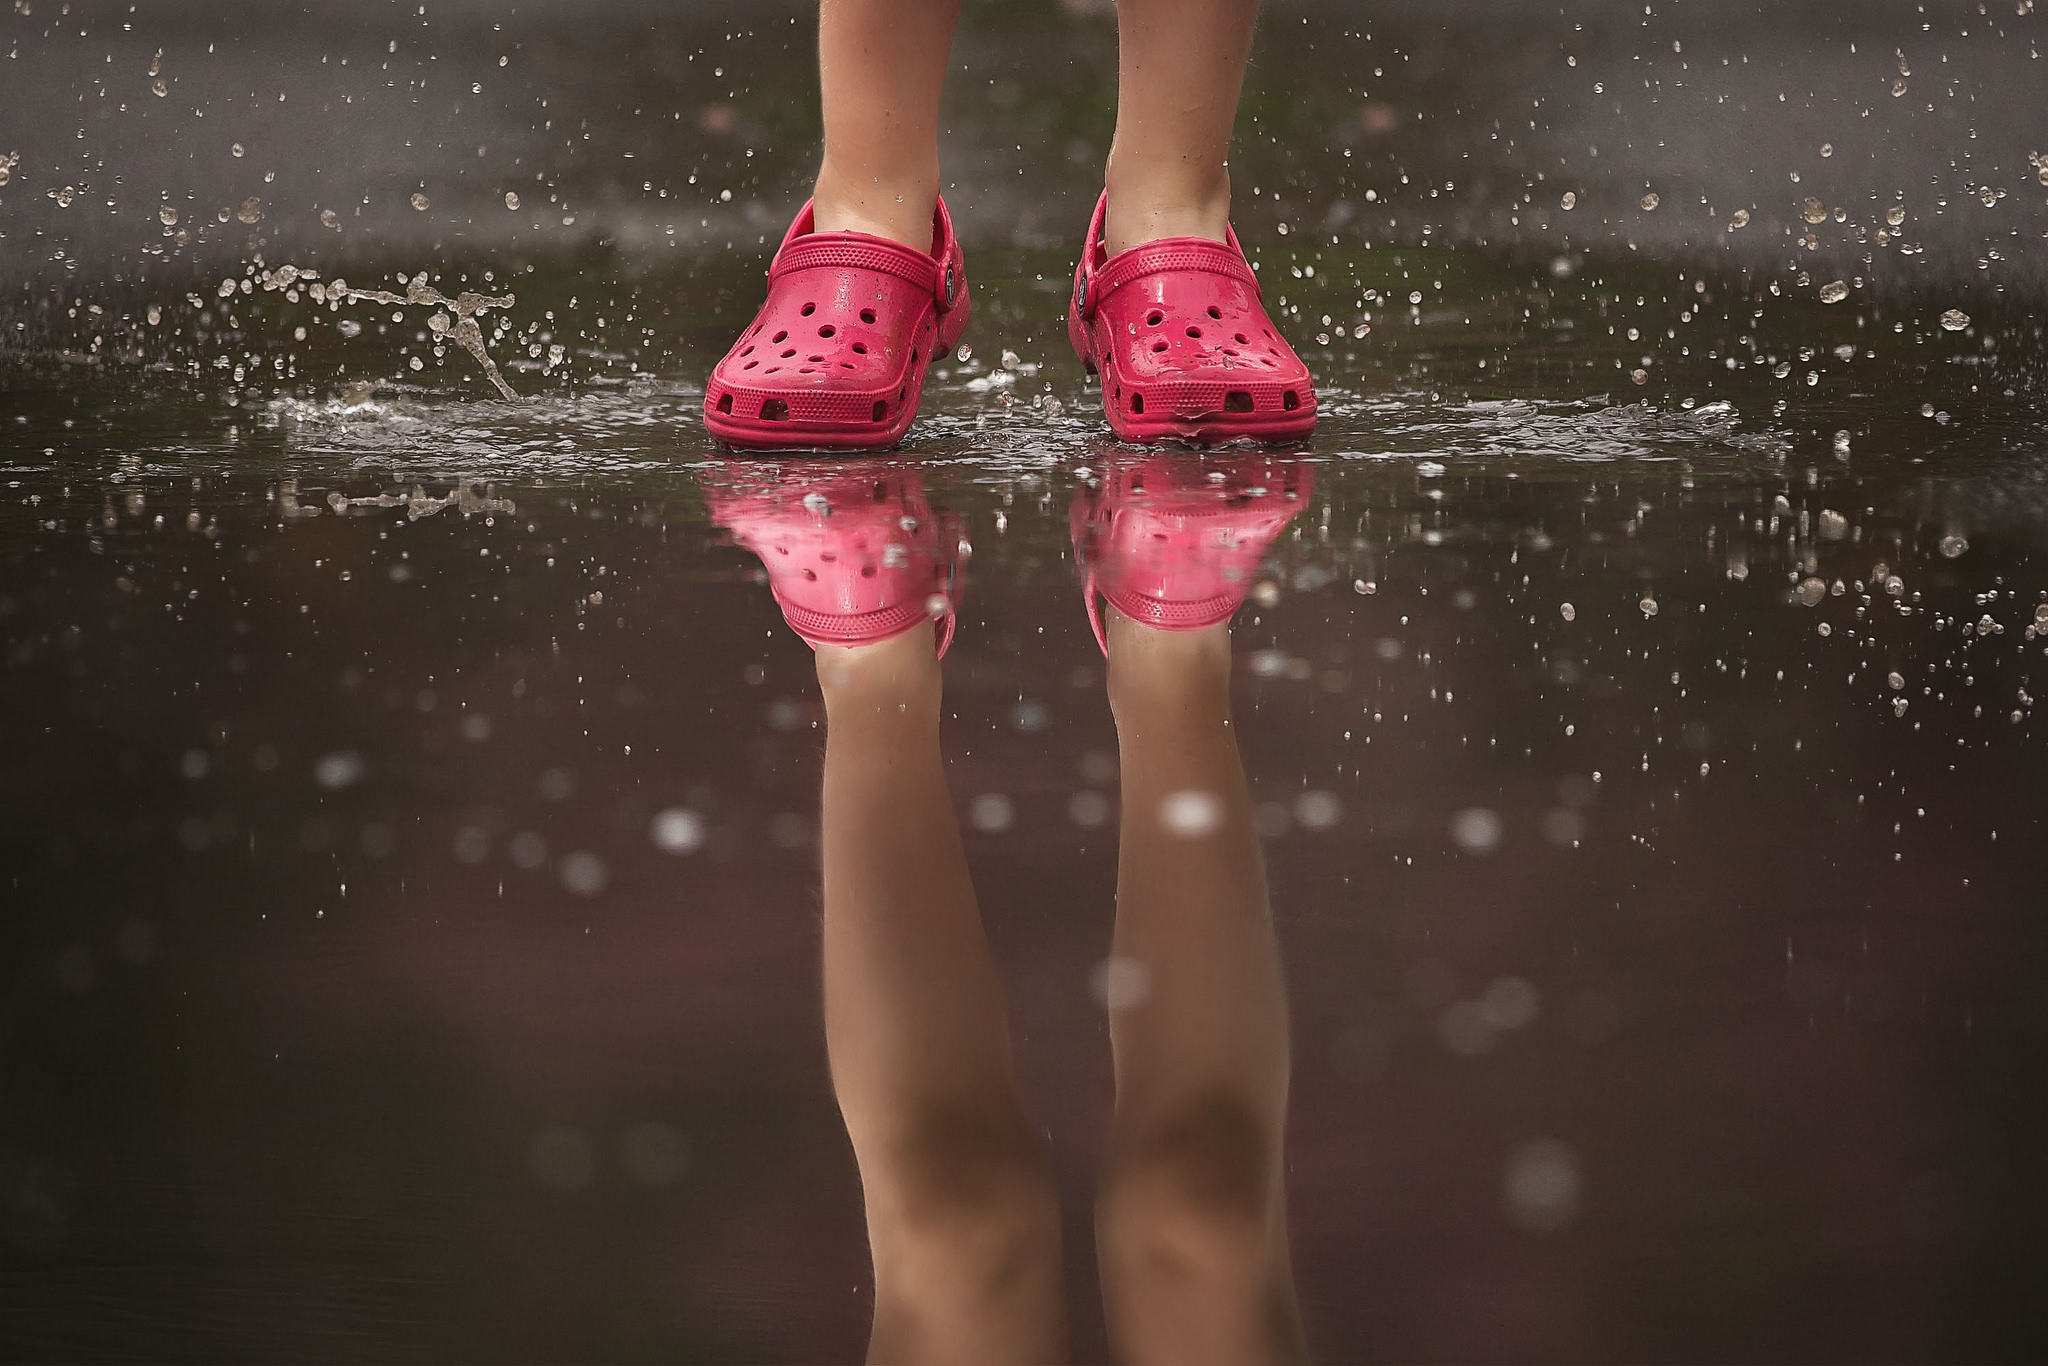 Long-island-new-york-photographer-hello-olivia-photography-lifestyle-suffolk-county-beatles-pink-shoes